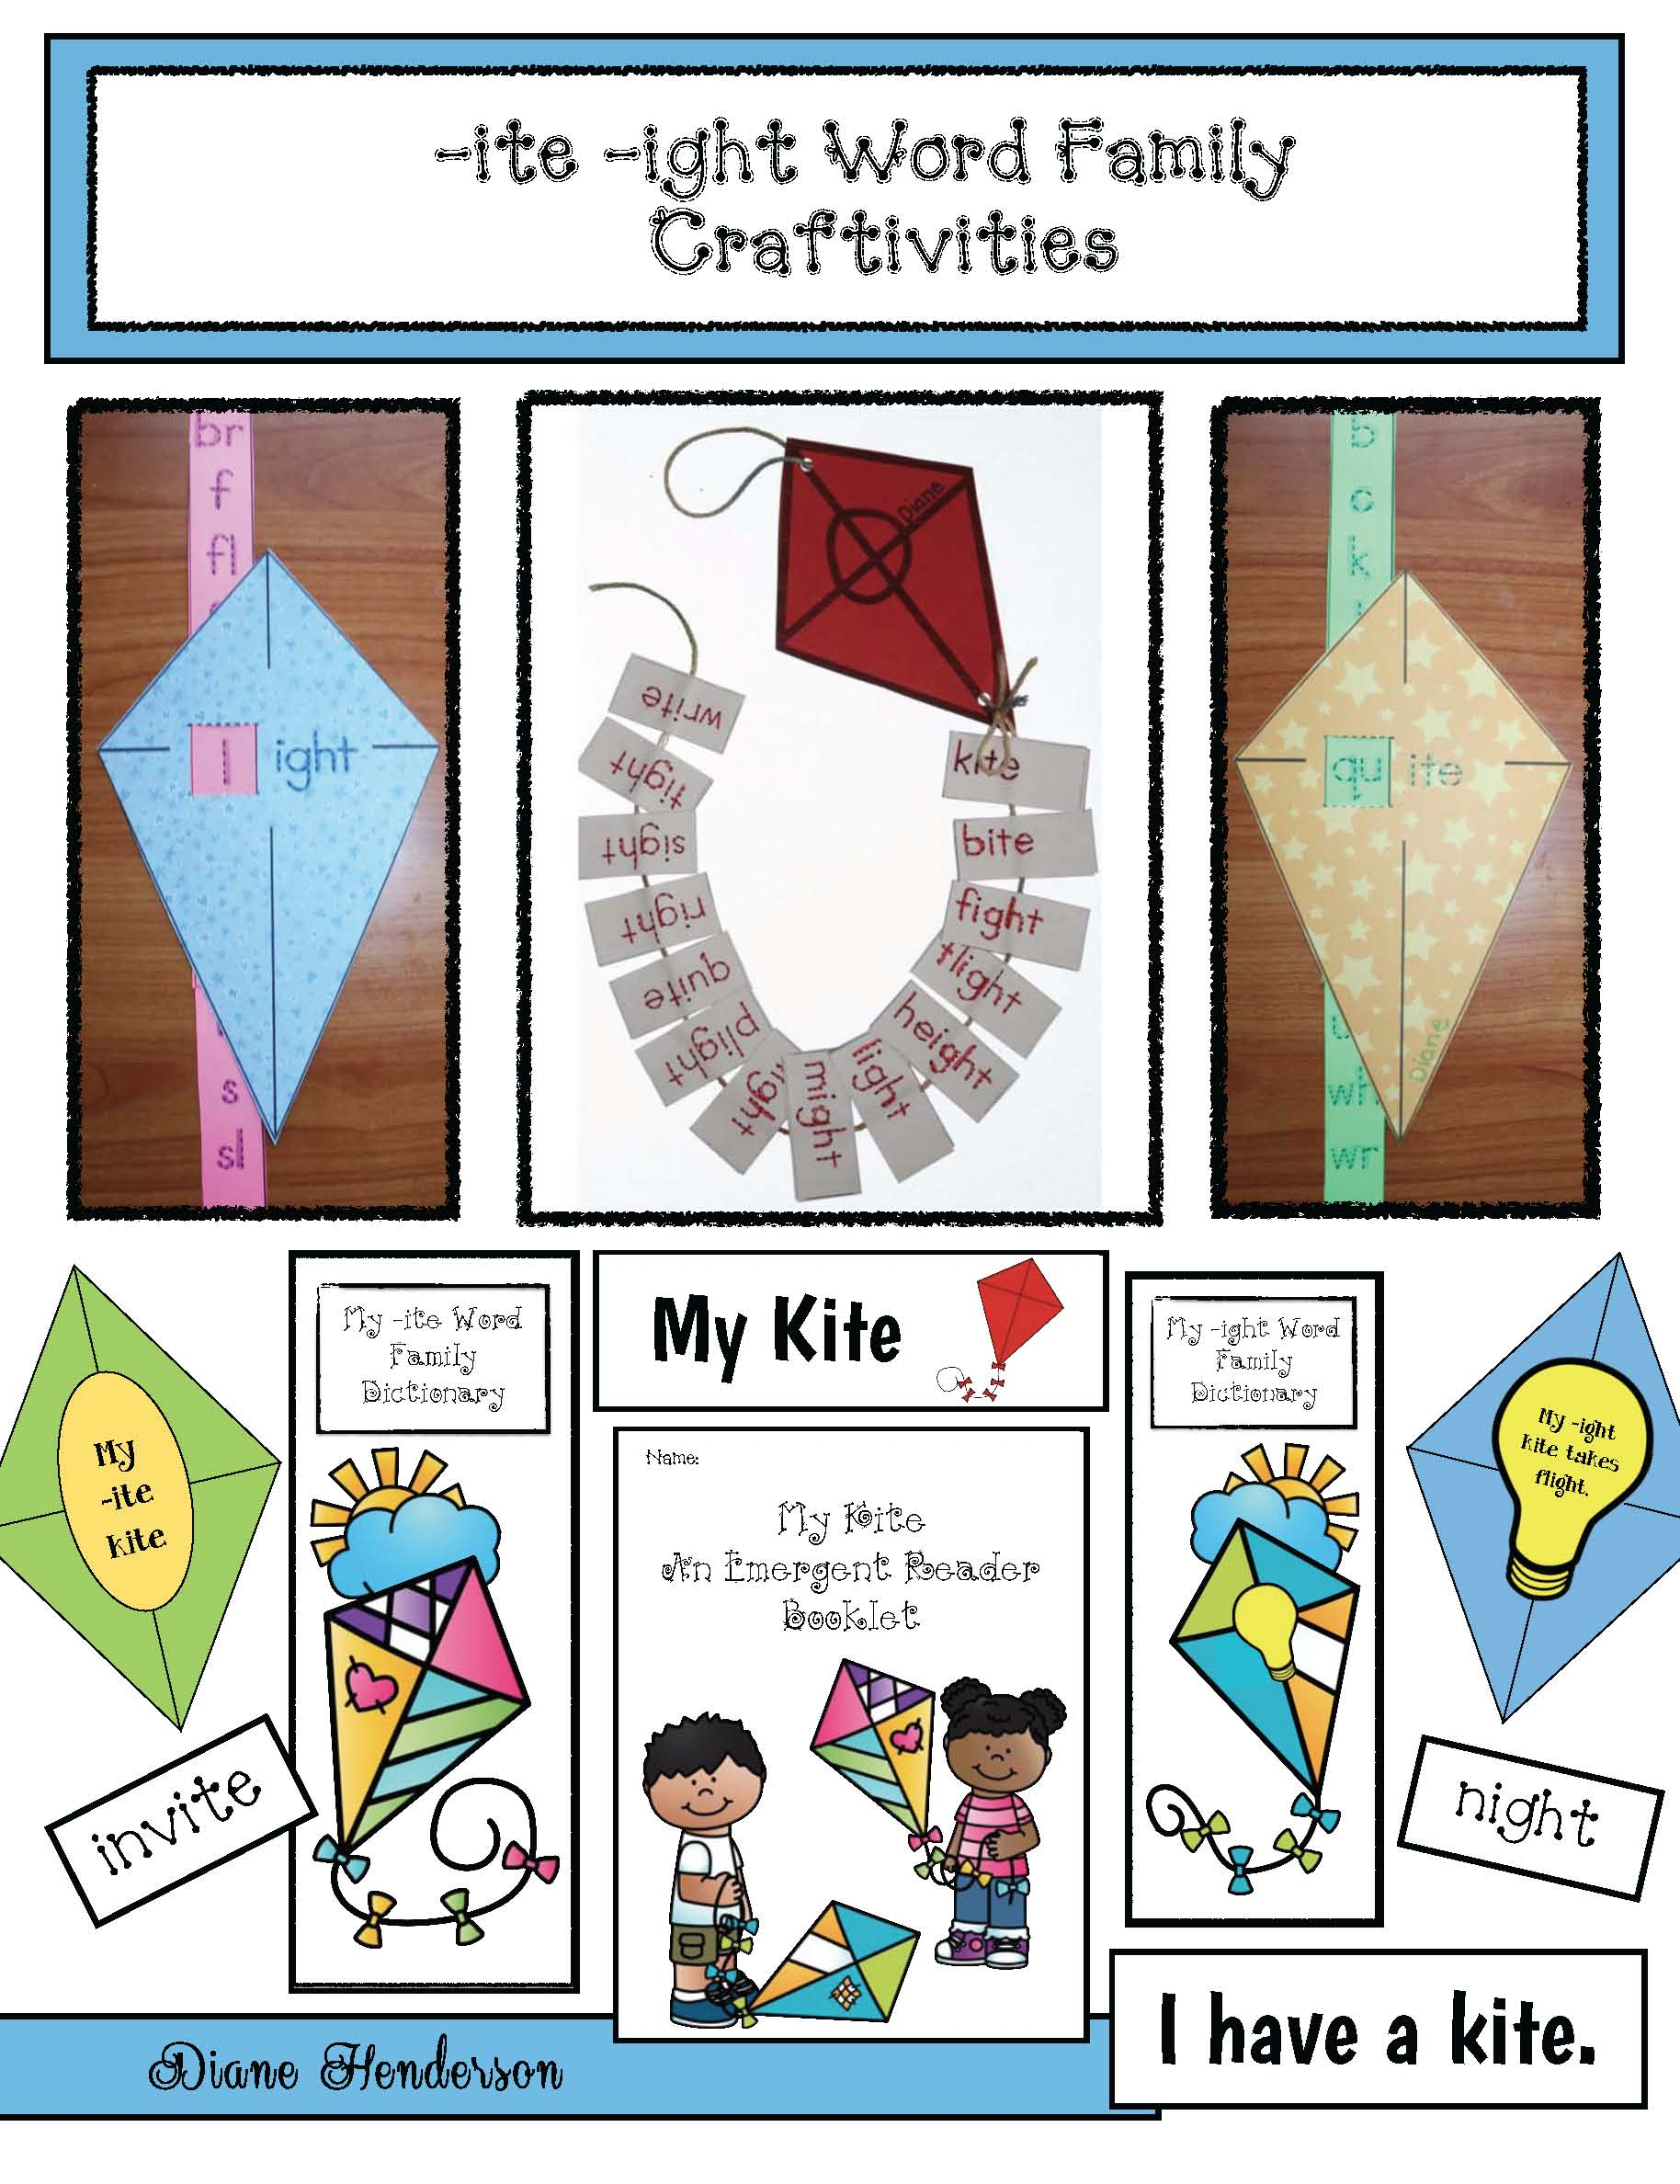 kite crafts, wind crafts, kite activites, wind activities, the wind blew activities, the wind blew activities, the wind blew story, ite and ight word family activities